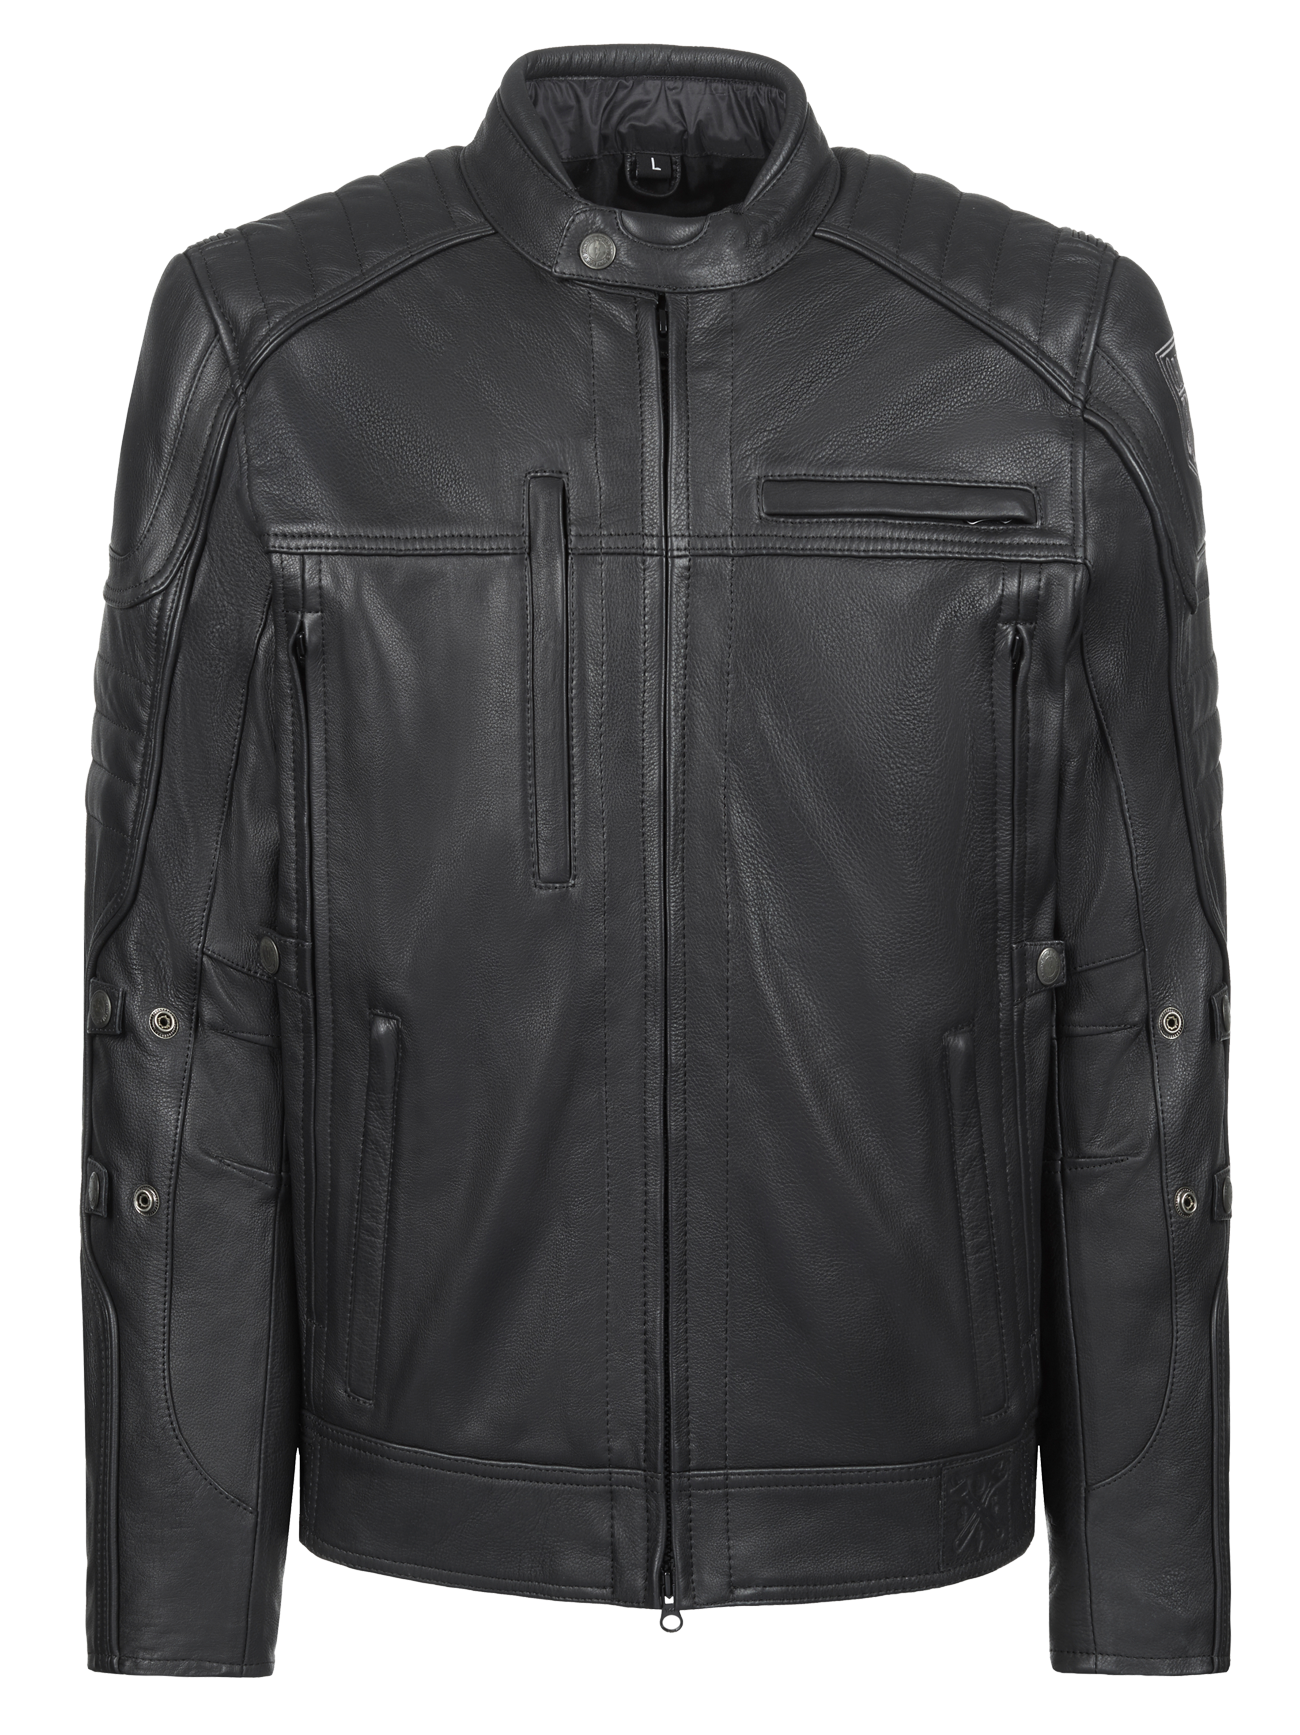 john doe kevlar leather jacket with kevlar. Black Bedroom Furniture Sets. Home Design Ideas